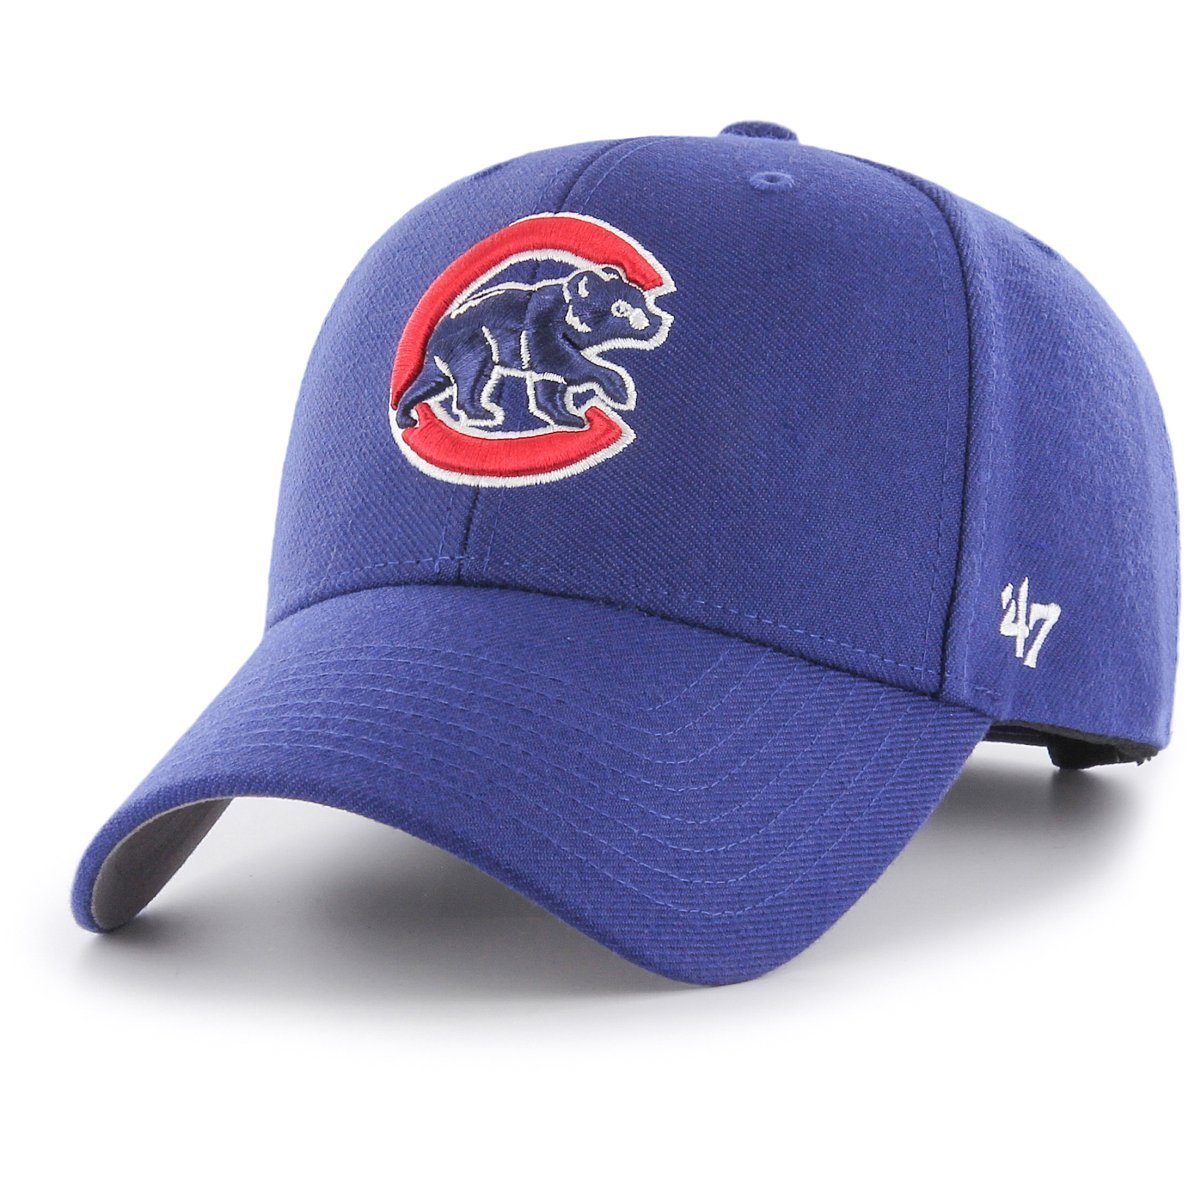 Amazon.com   47 Forty Seven Brand Chicago Cubs Curved Visor Velcroback Cap  MLB Limited Edition  Clothing 98ce97eb9b0